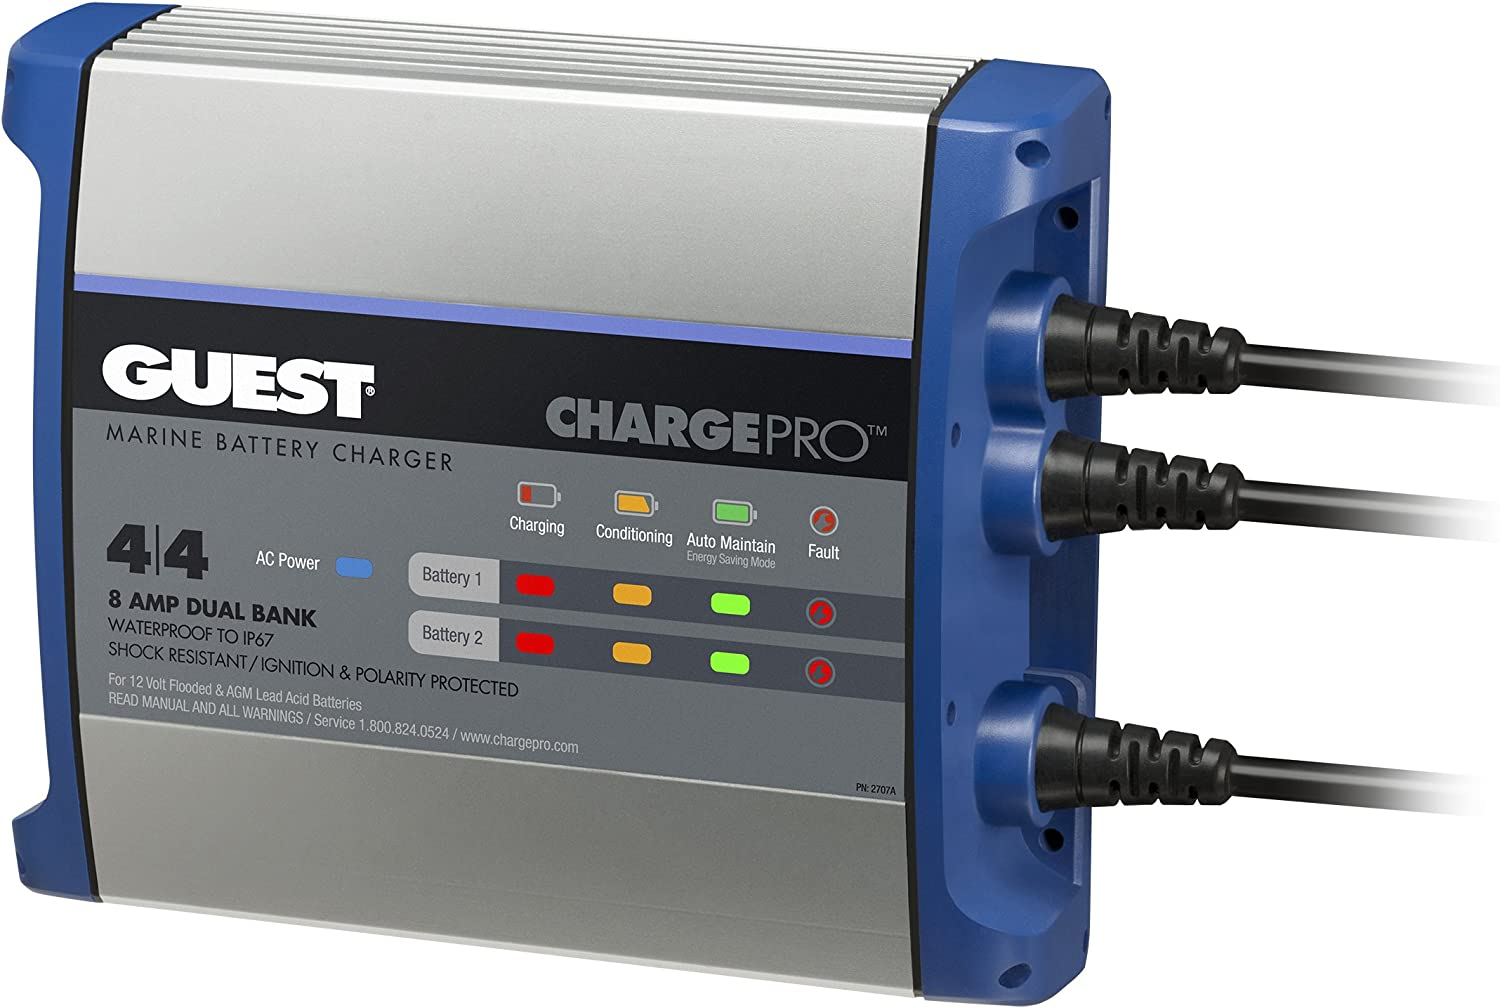 Guest 2707A ChargePro On-Board Battery Charger 8A / 12V, 2 Bank, 120V Input